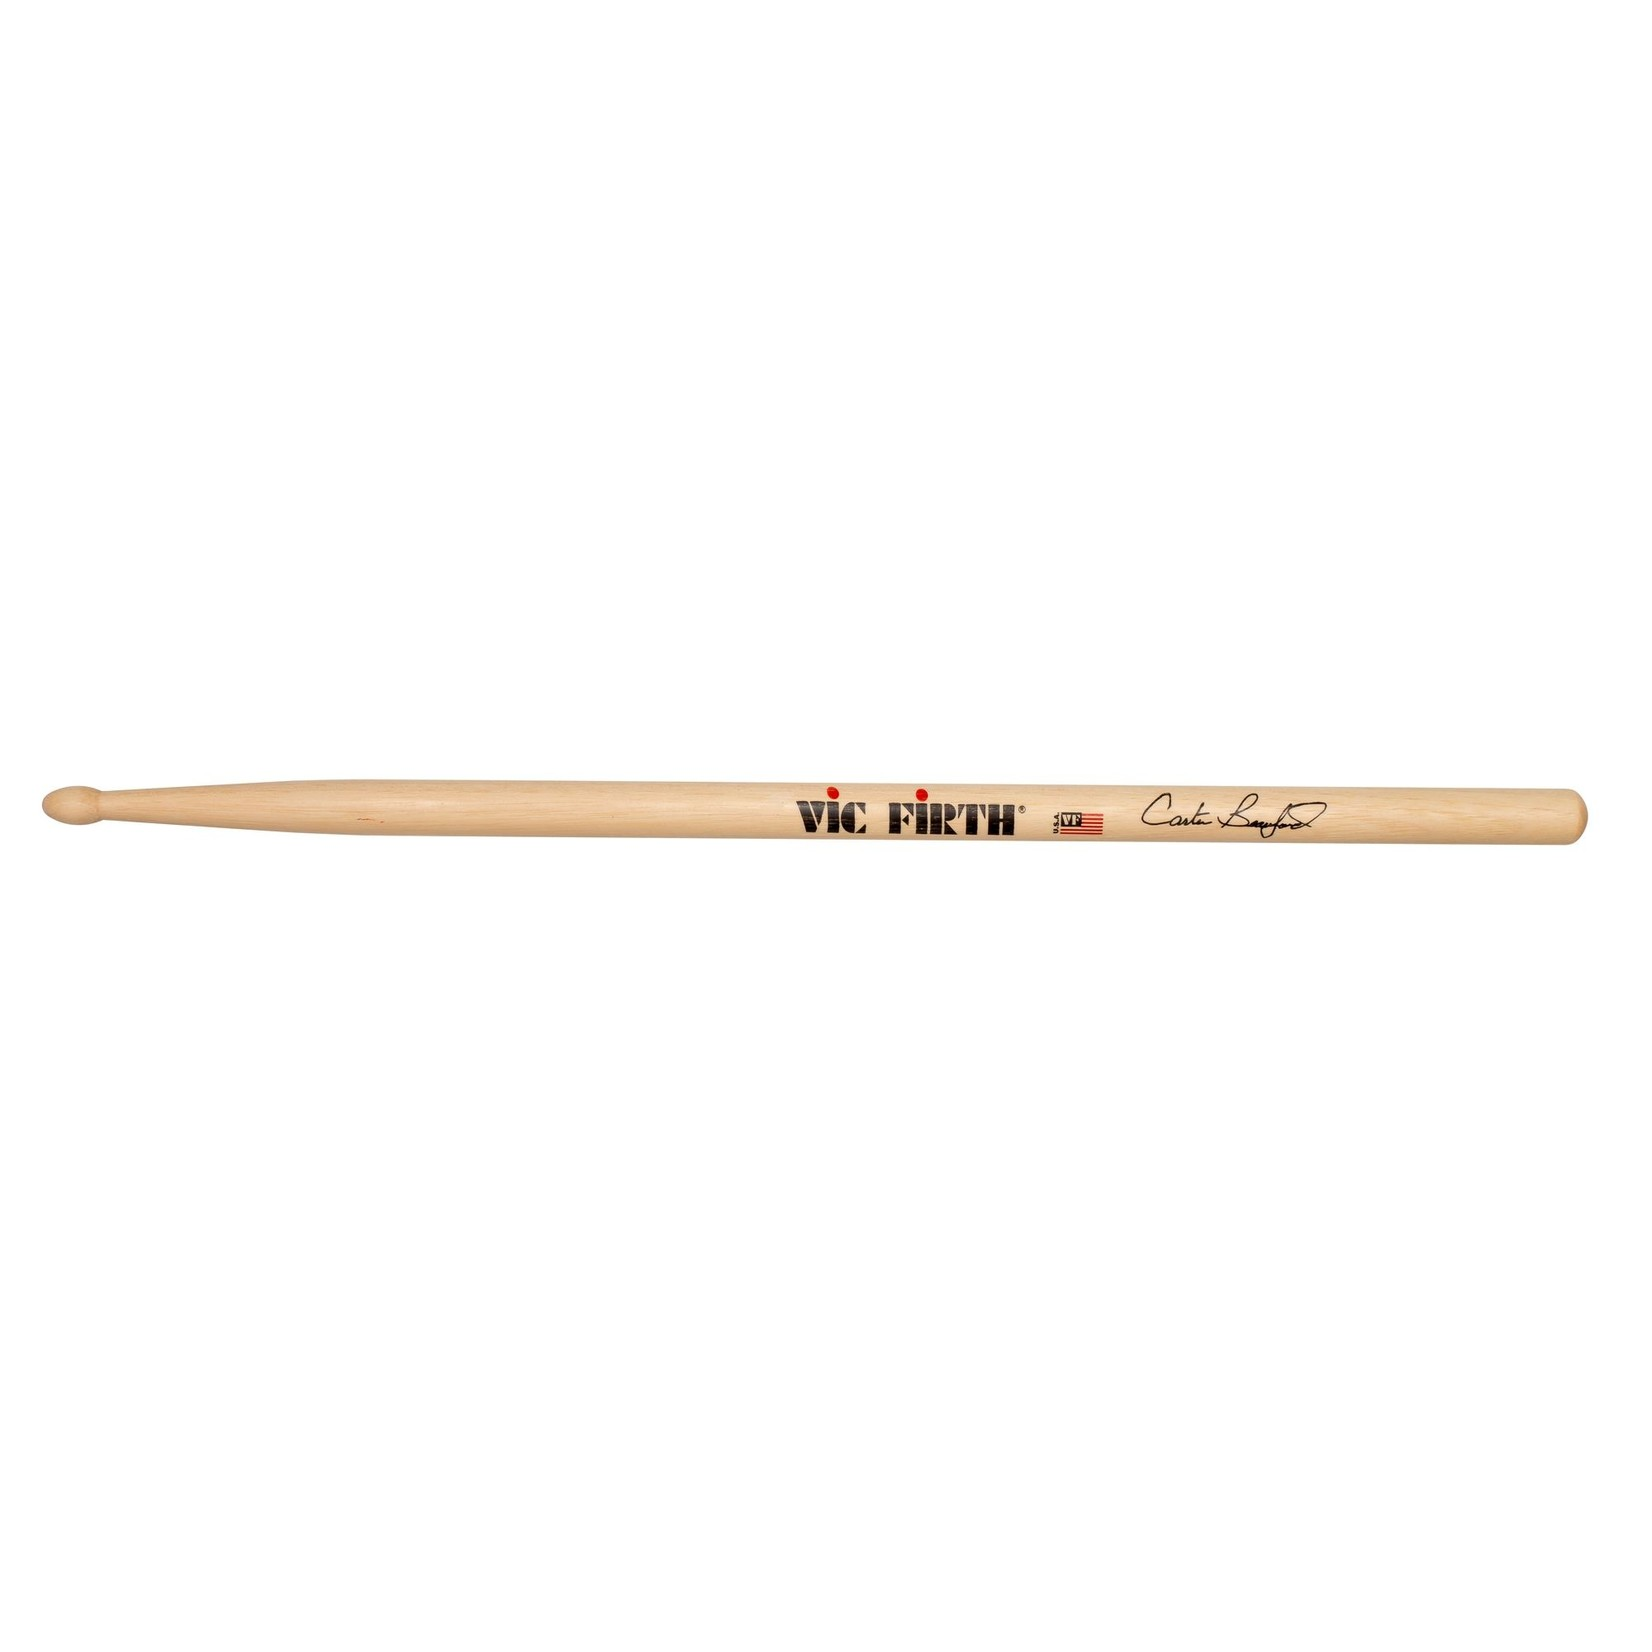 Vic Firth Vic Firth Signature Series -- Carter Beauford